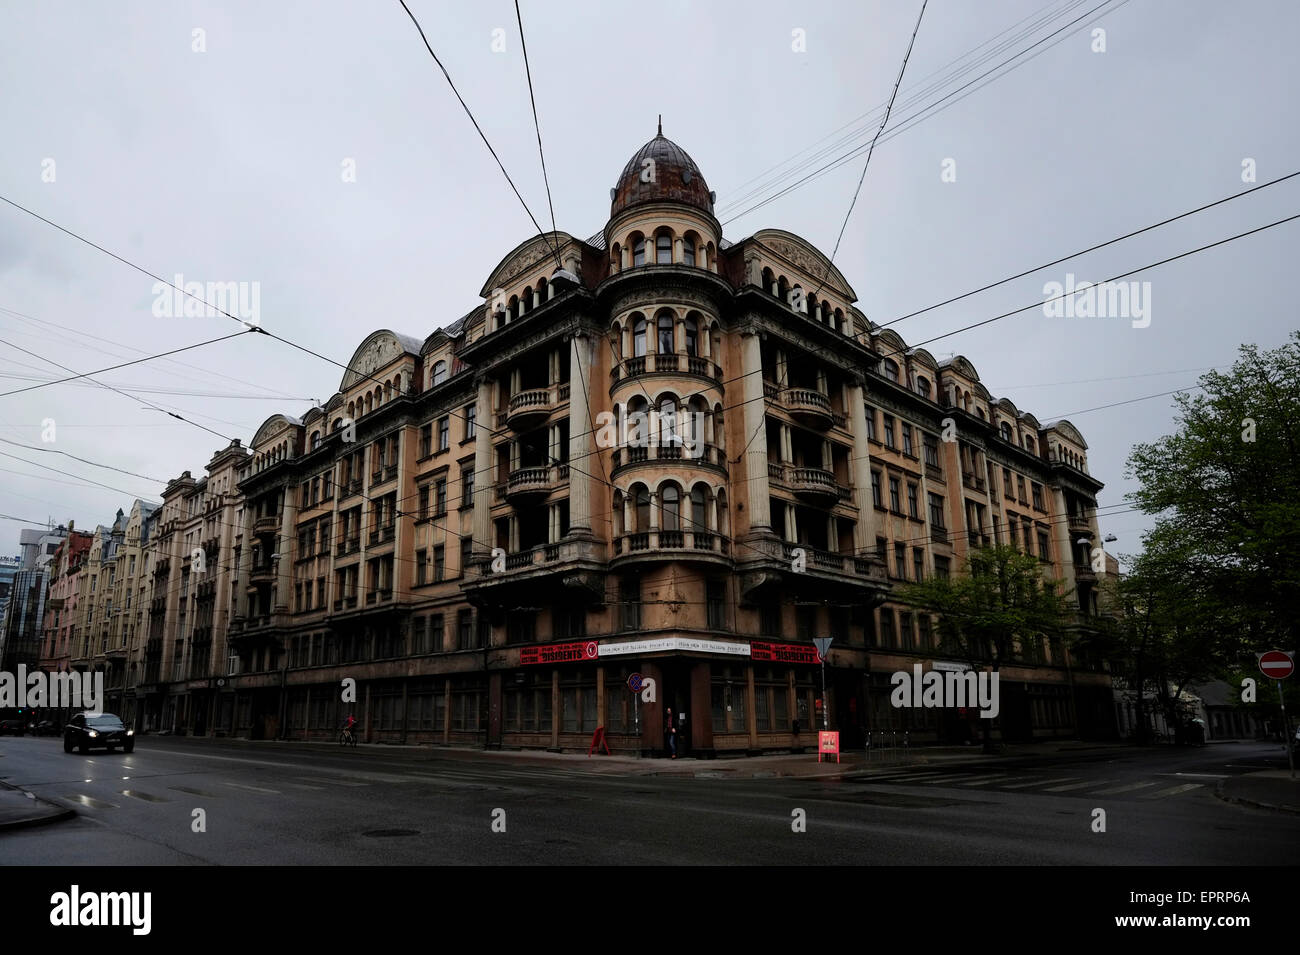 Exterior view of the former KGB, or 'Cheka' headquarters known by locals as the Corner House in Riga capital of - Stock Image